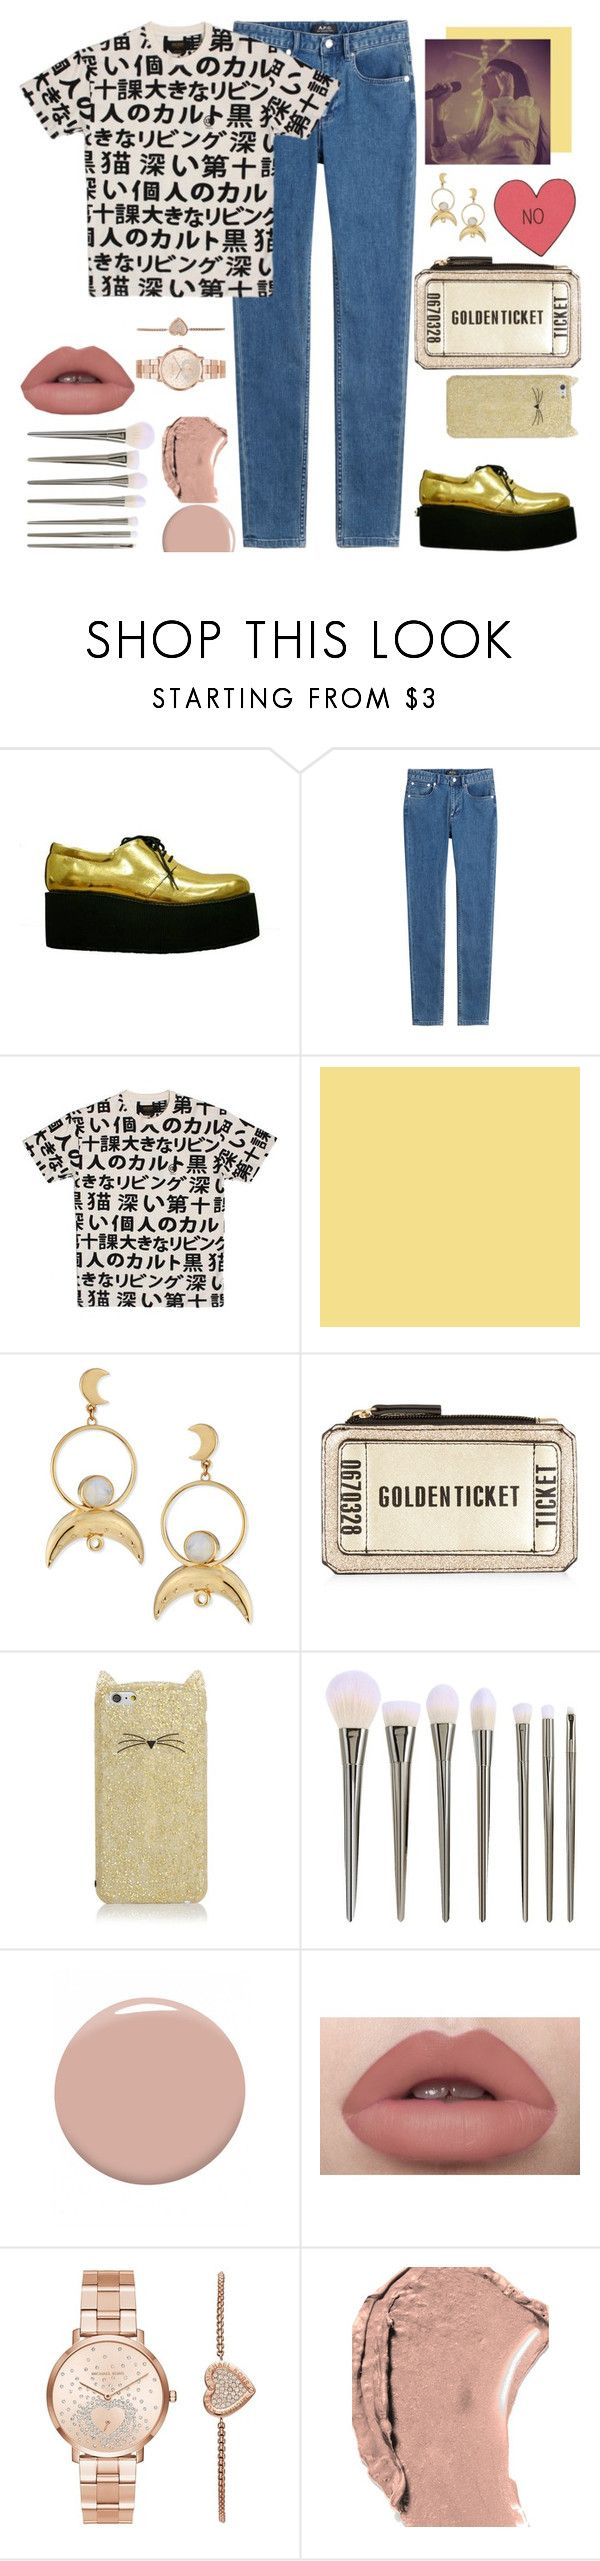 """""""play date//Melanie Martinez"""" by gb041112 ❤ liked on Polyvore featuring A.P.C., 10.Deep, Pamela Love, Kate Spade, Christian Louboutin, Michael Kors and Dolce&Gabbana"""